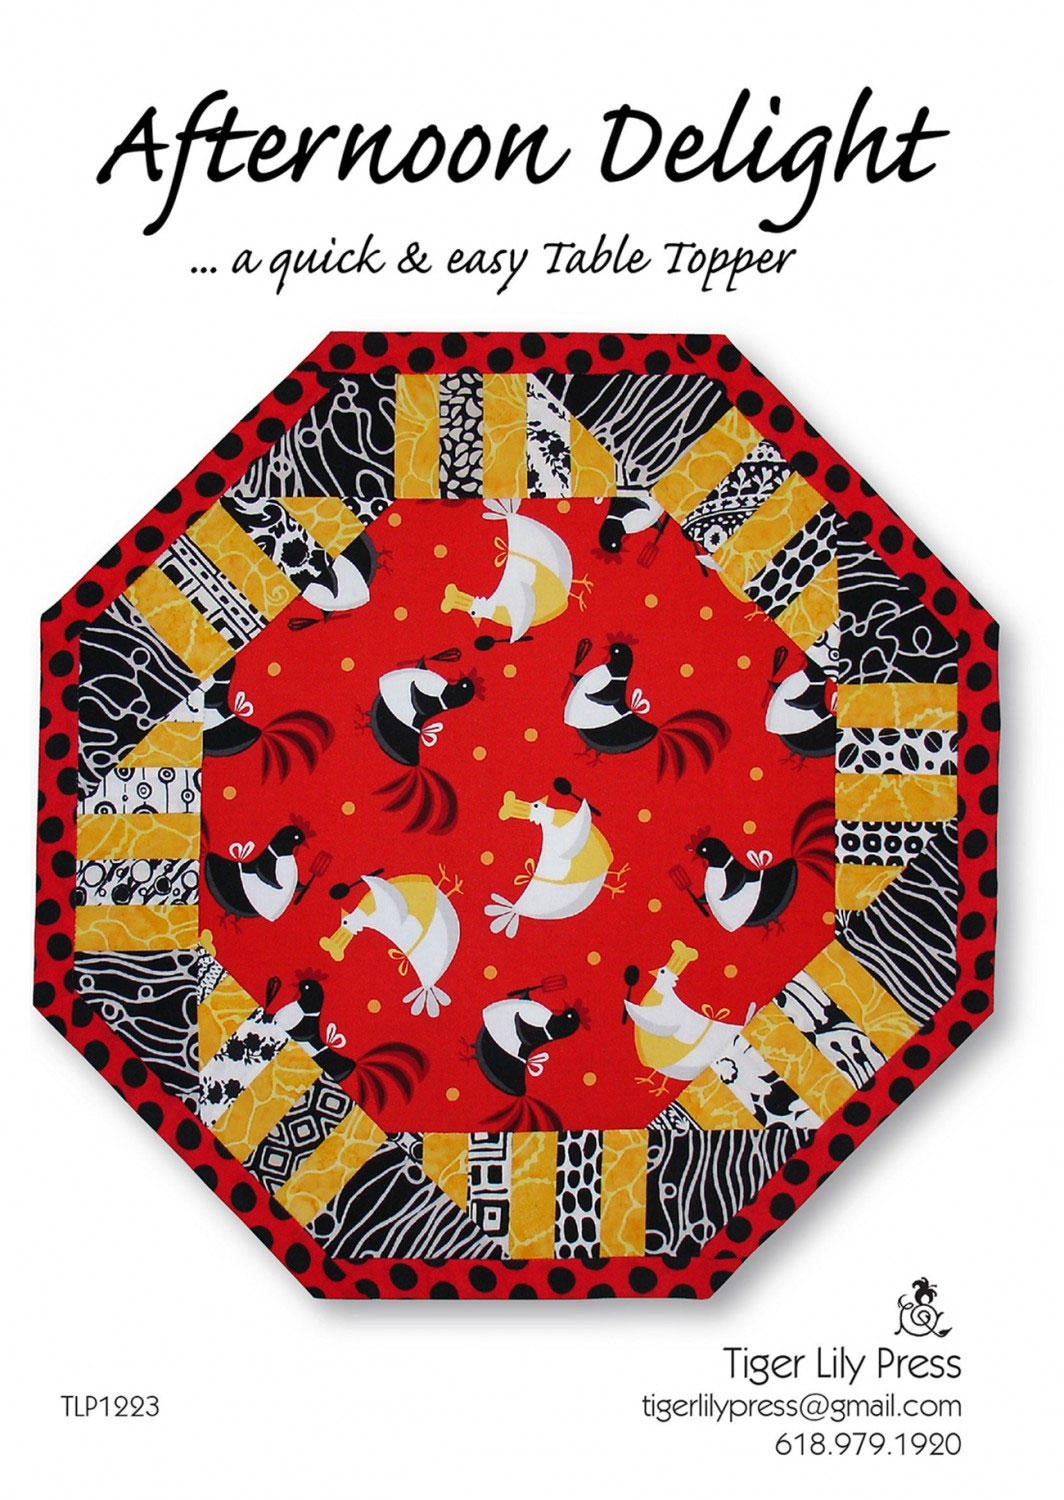 Afternoon-Delight-sewing-pattern-Tiger-Lily-Press-front